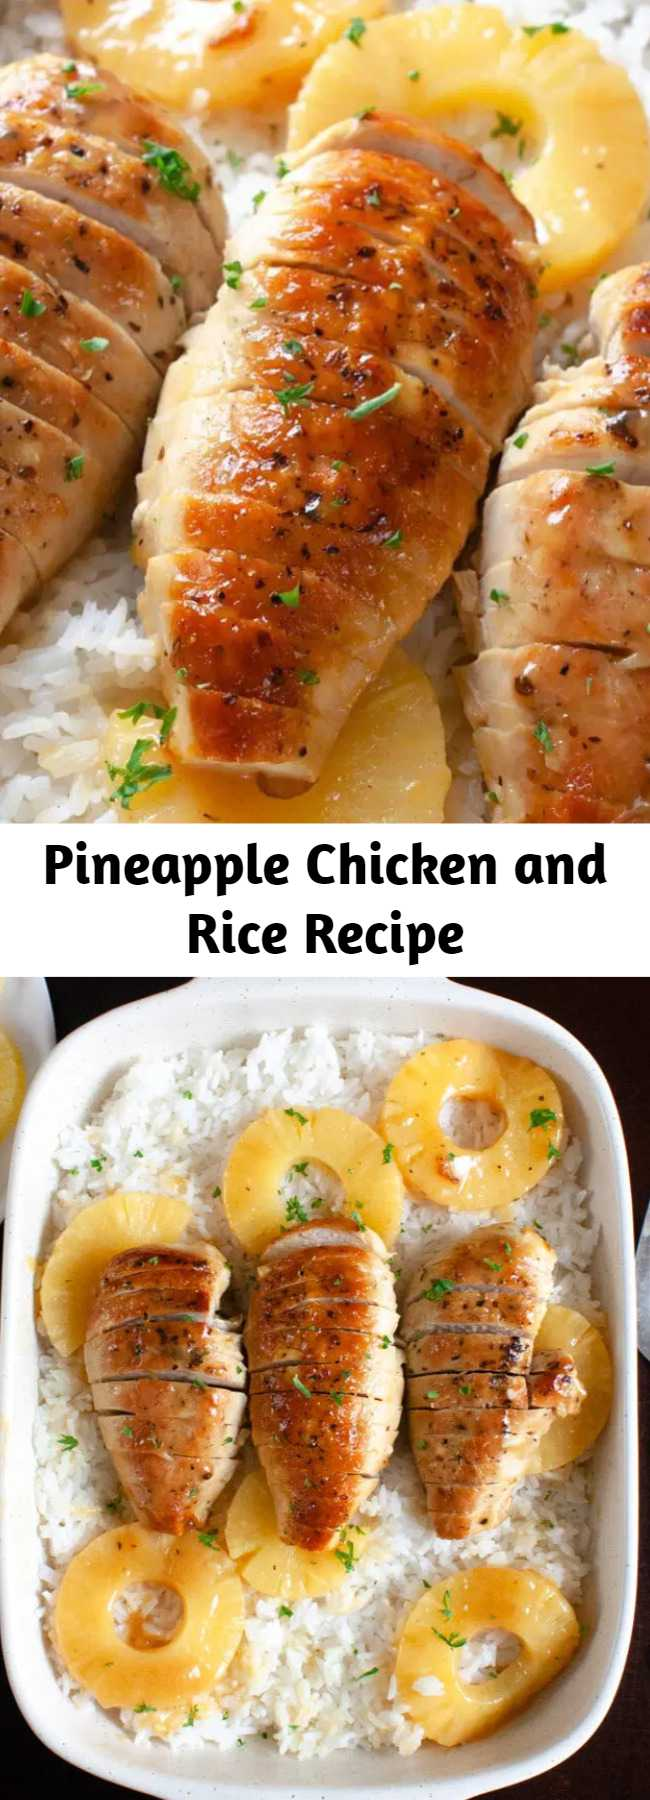 Pineapple Chicken and Rice Recipe - Pineapple Chicken with Rice Dinner Recipe. Tender chicken cooked in a sweet pineapple honey Dijon sauce and served over rice.